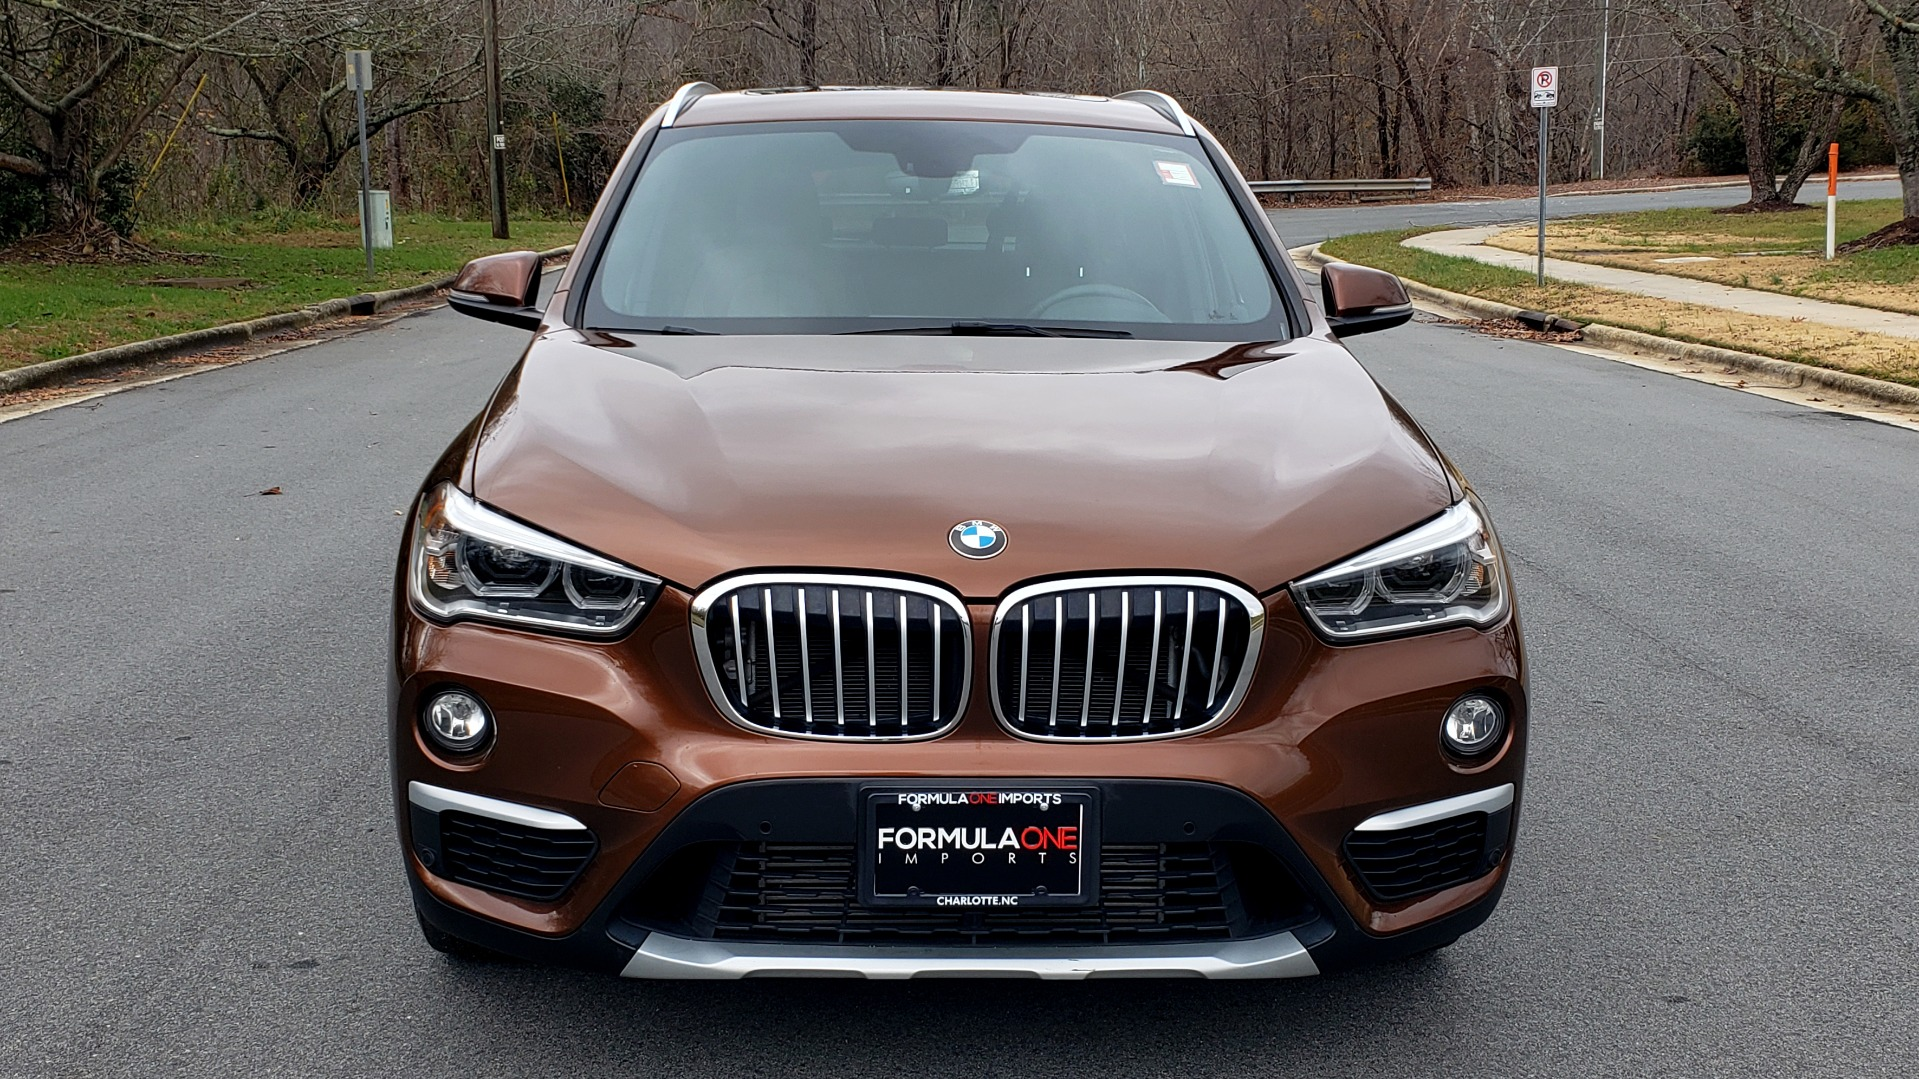 Used 2017 BMW X1 XDRIVE28I / PREM / TECH / DRVR ASST / COLD WTHR / REARVIEW for sale Sold at Formula Imports in Charlotte NC 28227 19